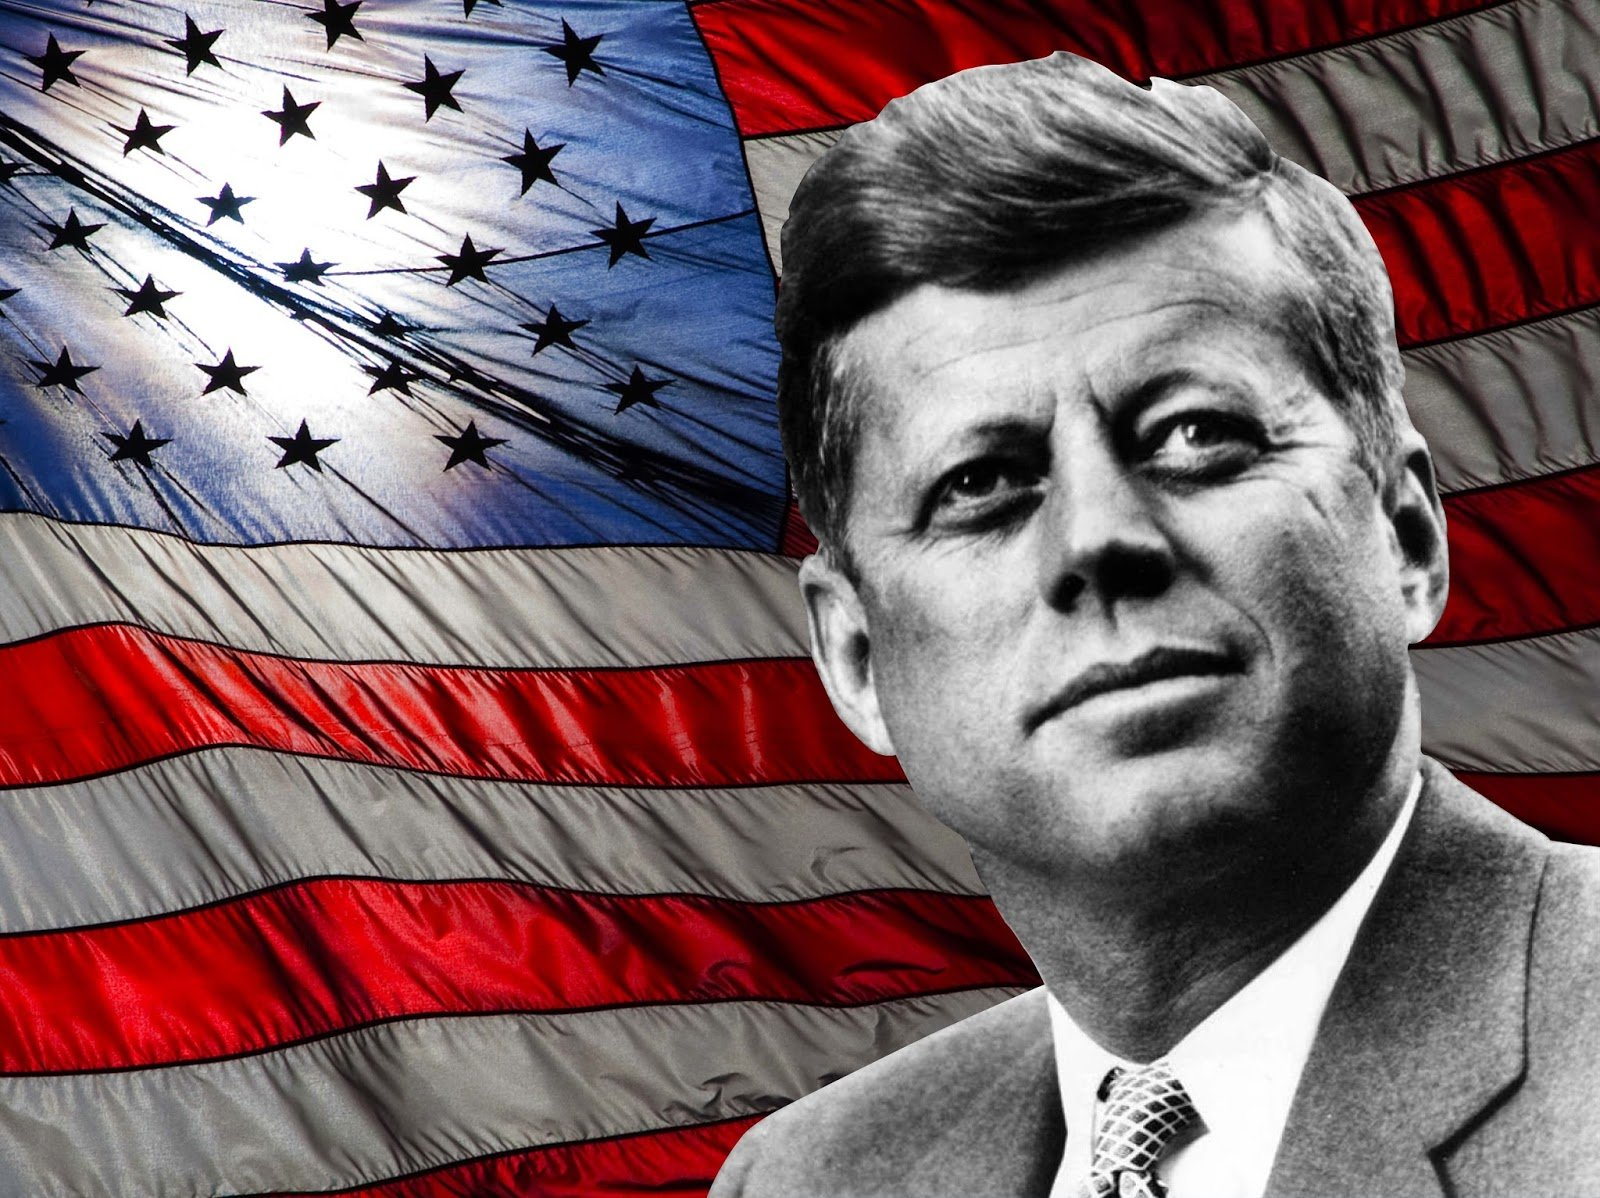 john f kennedy and a new generation changing the stereotype without creating much change Elected in 1960 as the 35th president of the united states, 43-year-old john f kennedy became the youngest man and the first roman catholic to hold that office he was born into one of america.